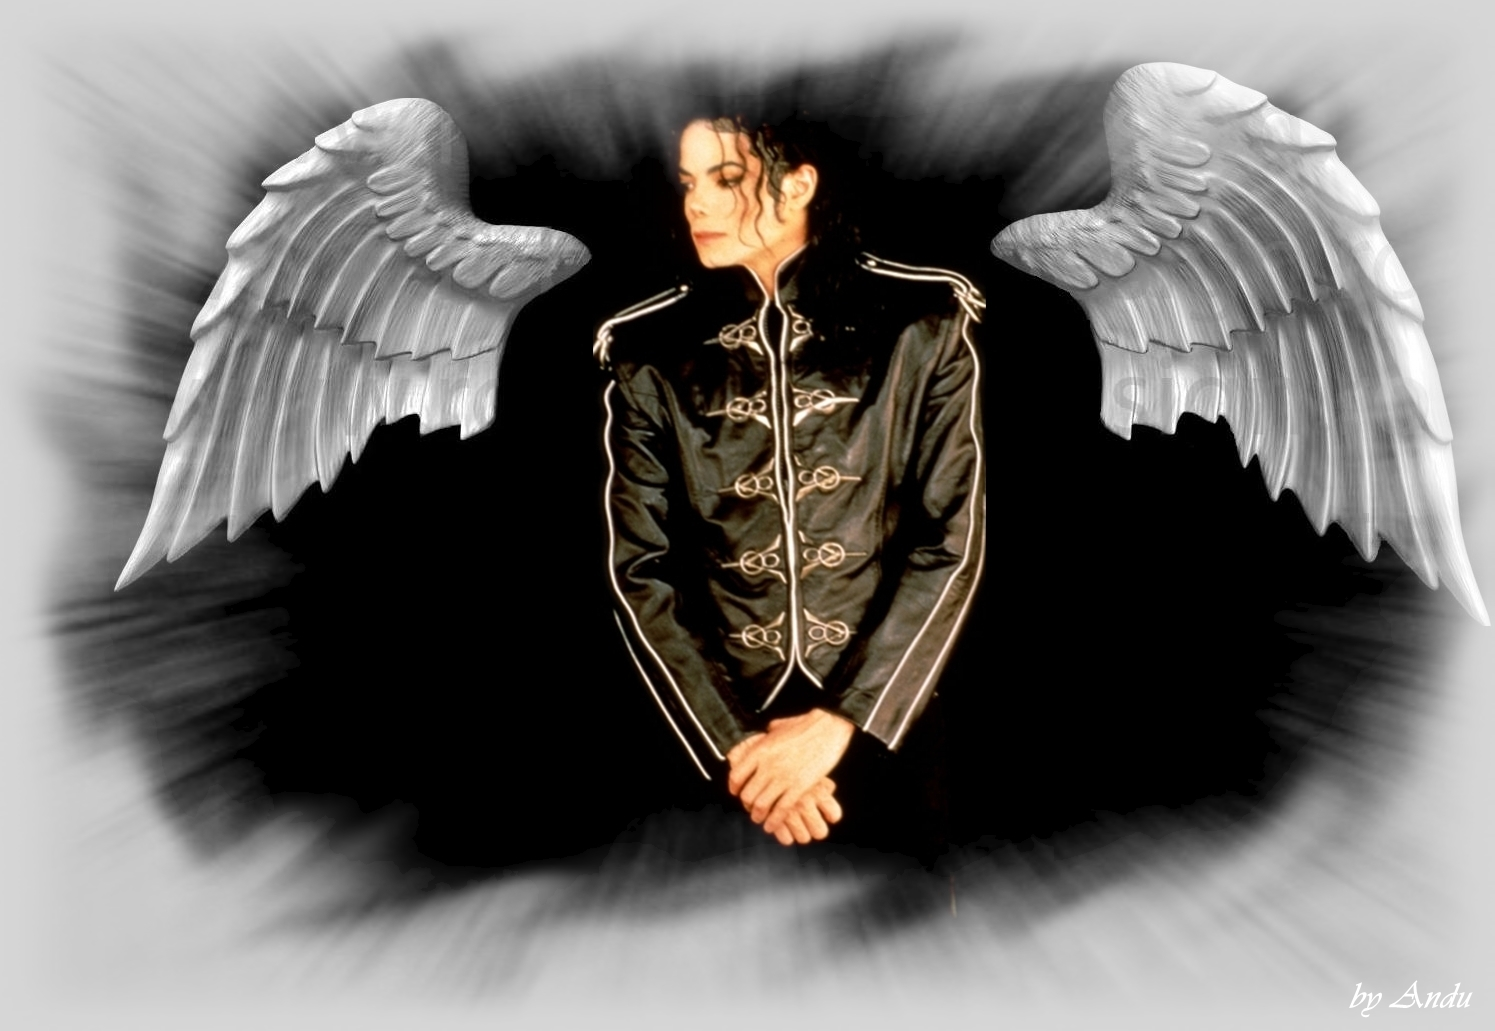 michael jackson wallpaper iandut on deviantart